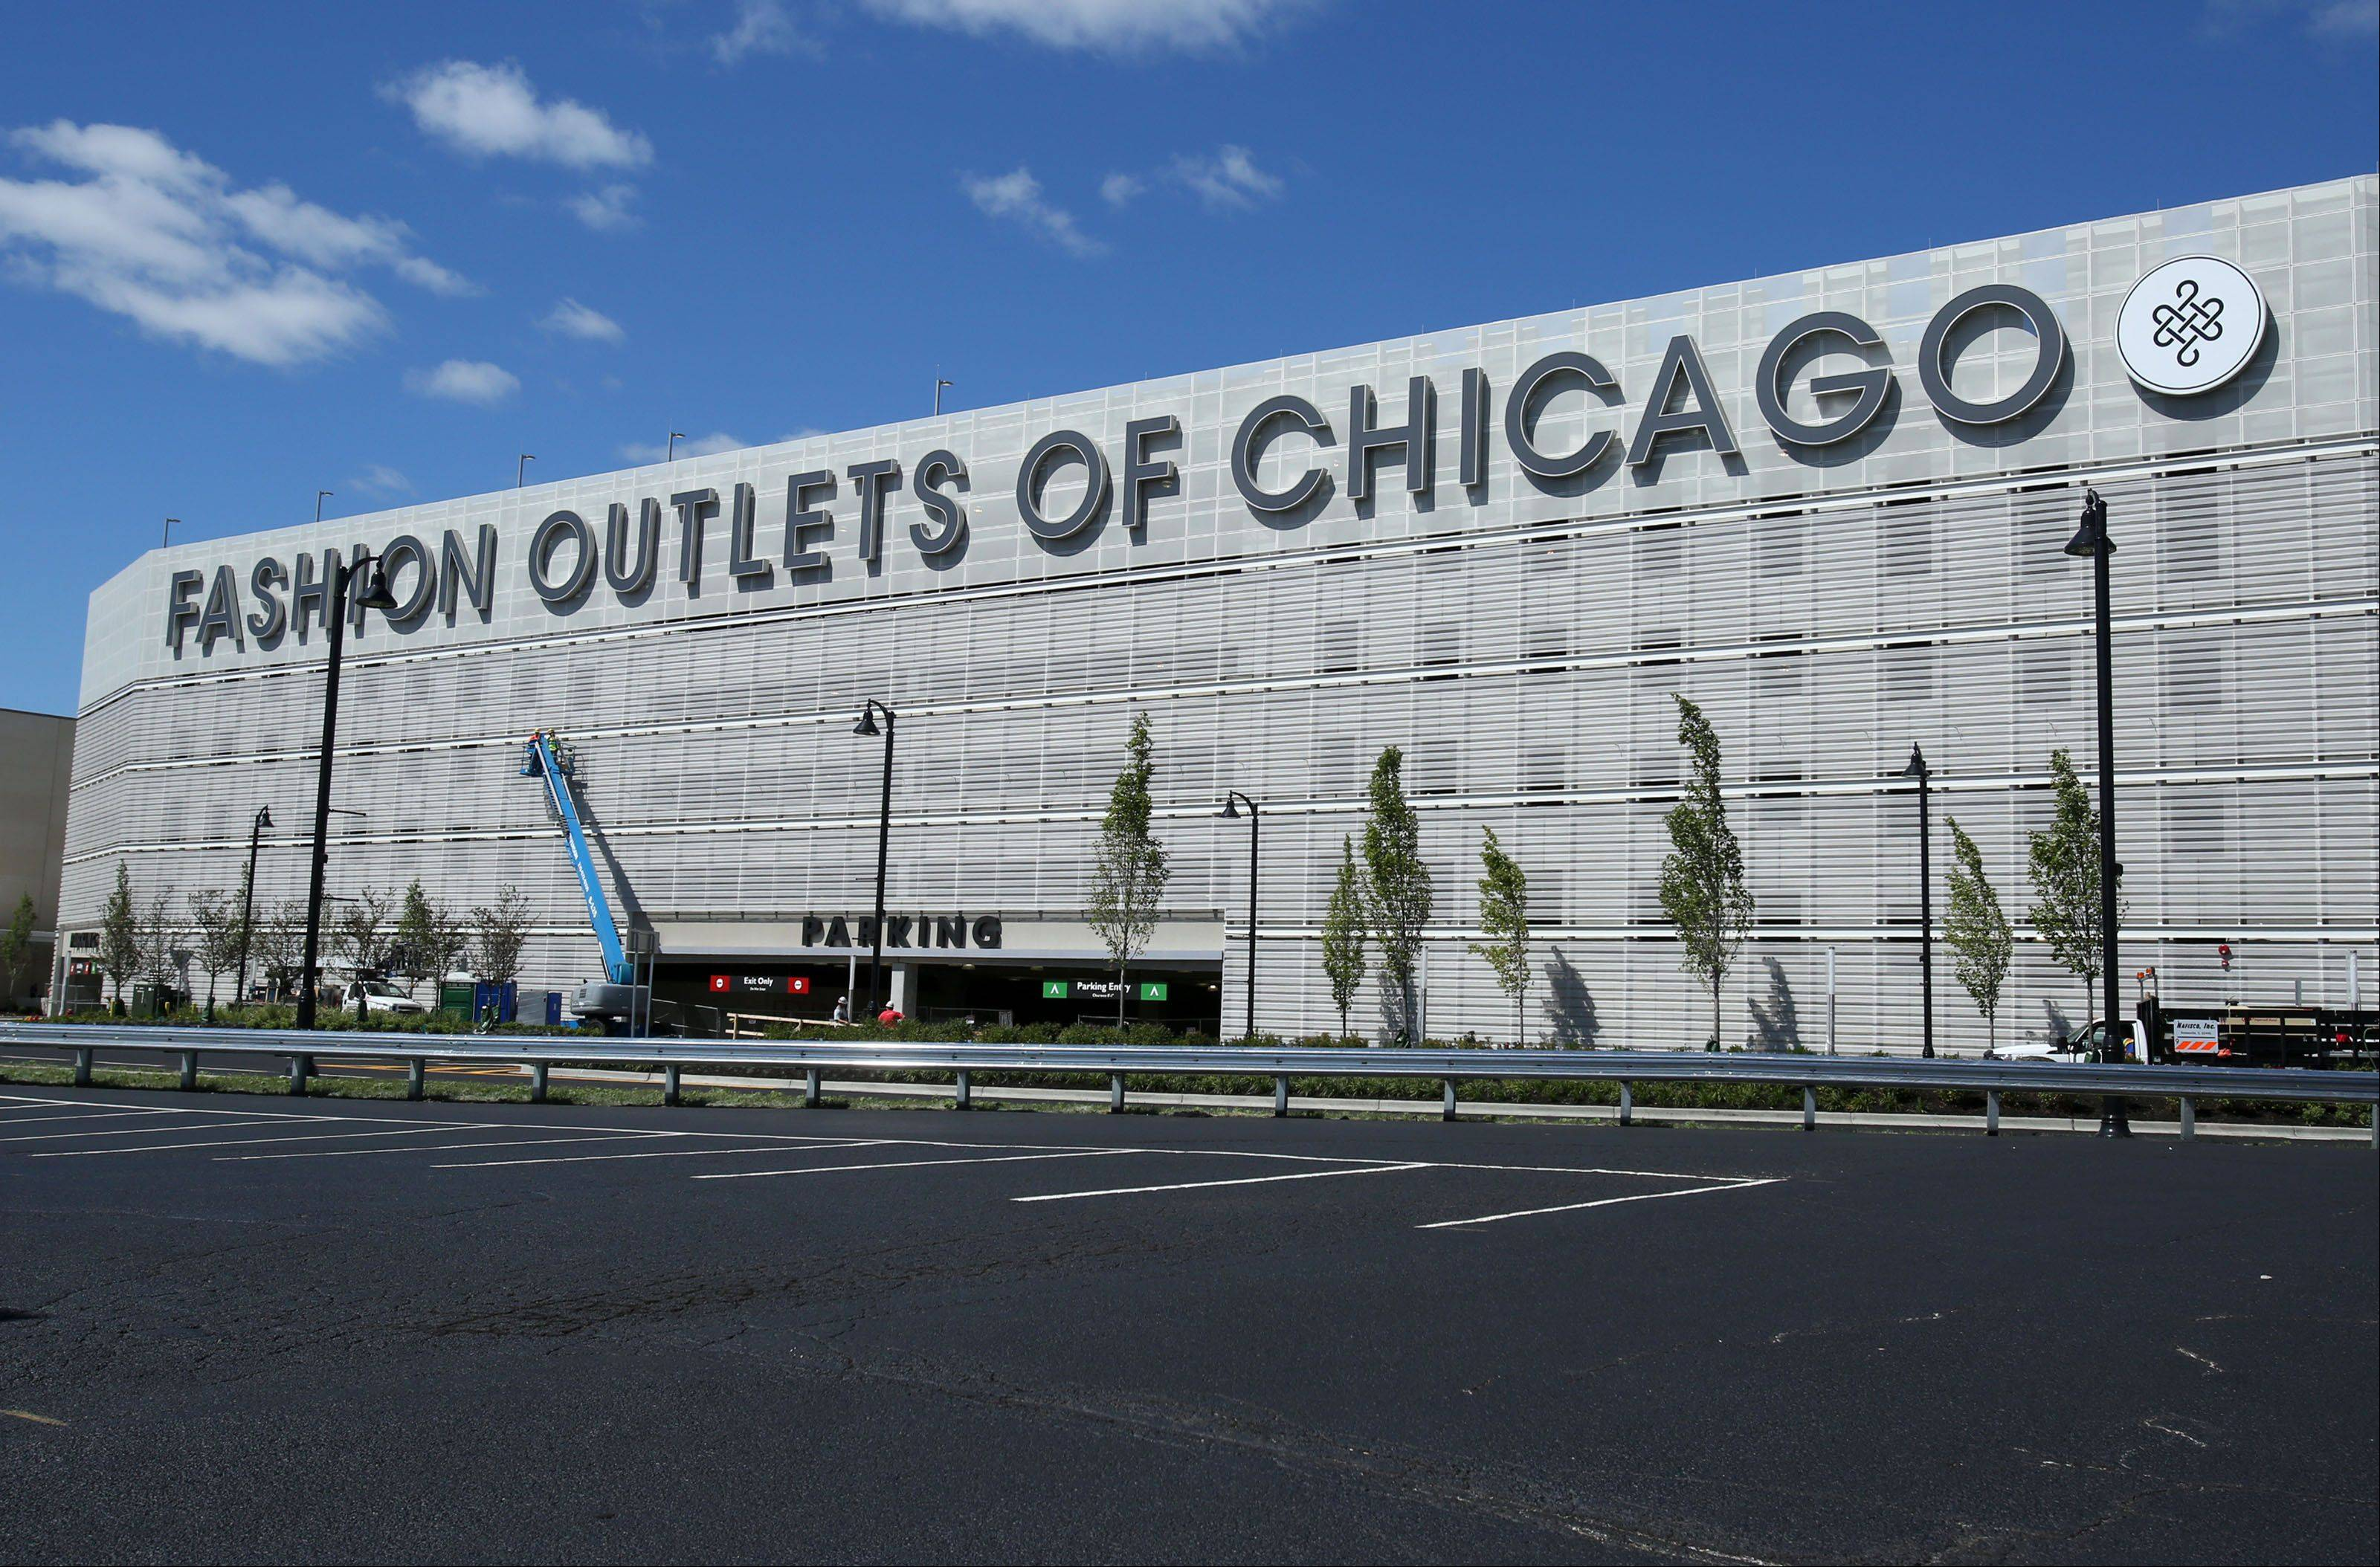 Fashion Outlets of Chicago in Rosemont on Wednesday, July 24, 2013.